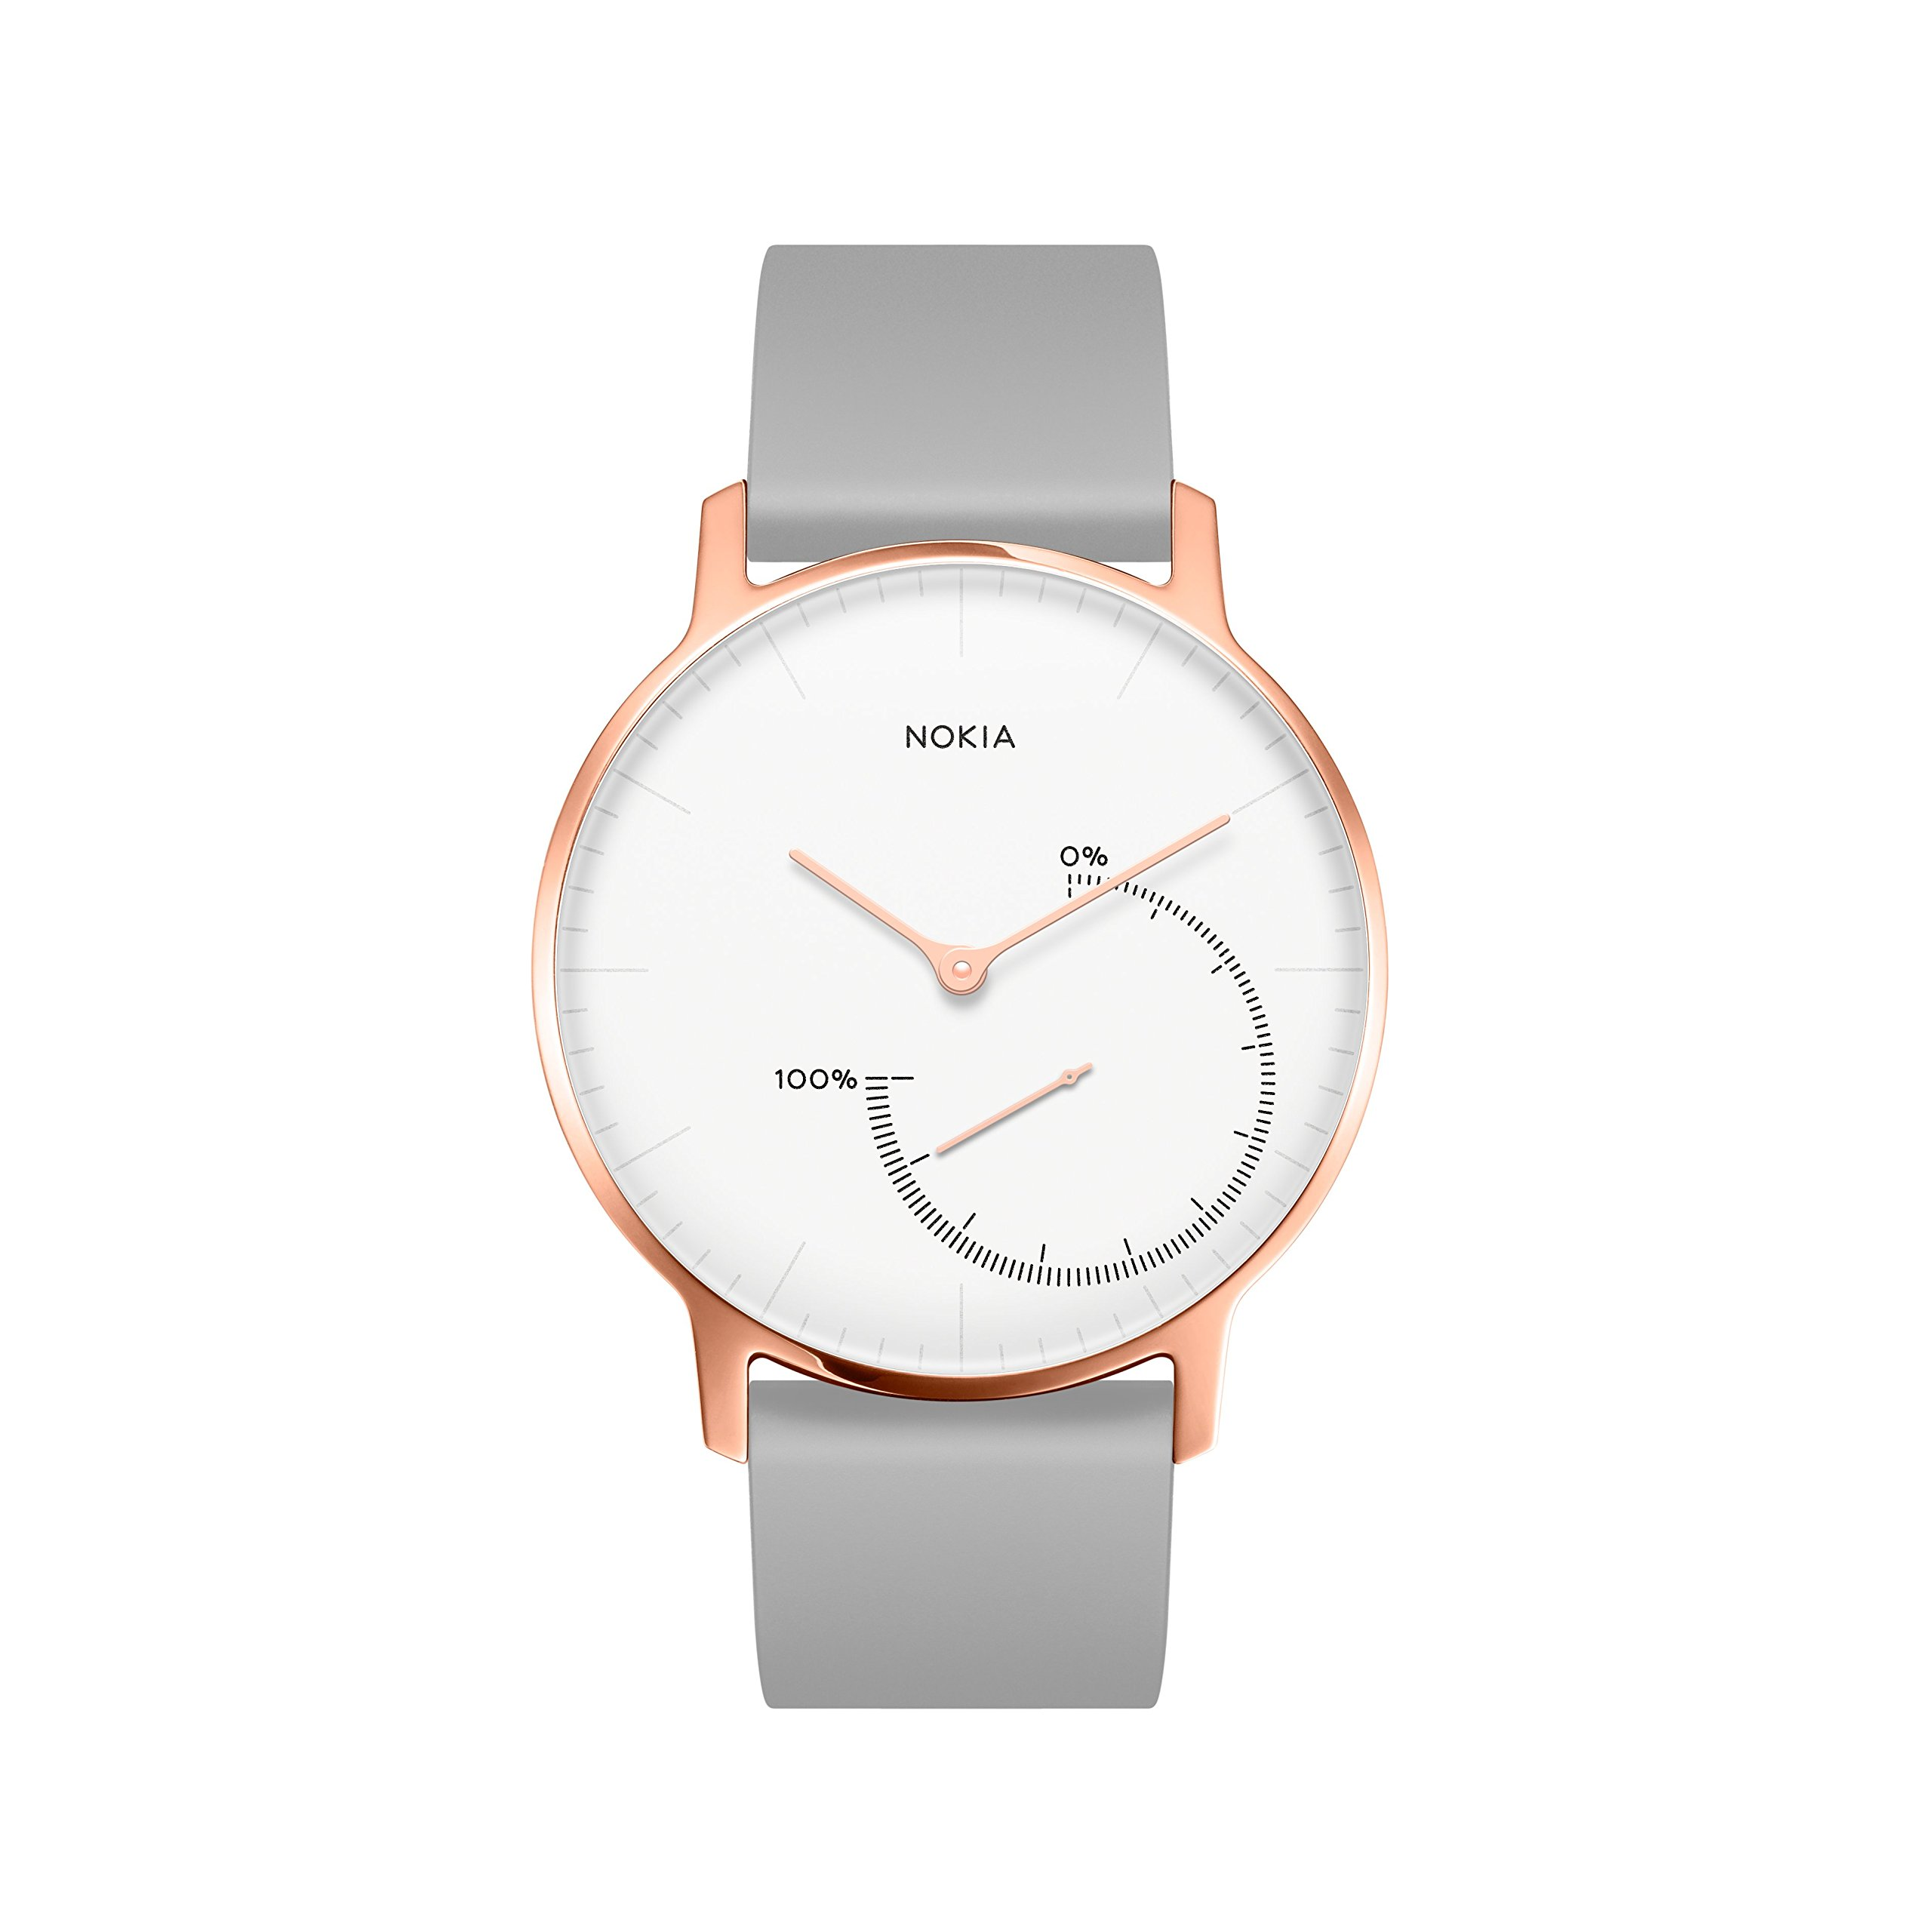 Nokia Steel Limited Edition - Activity & Sleep Watch, Rose Gold